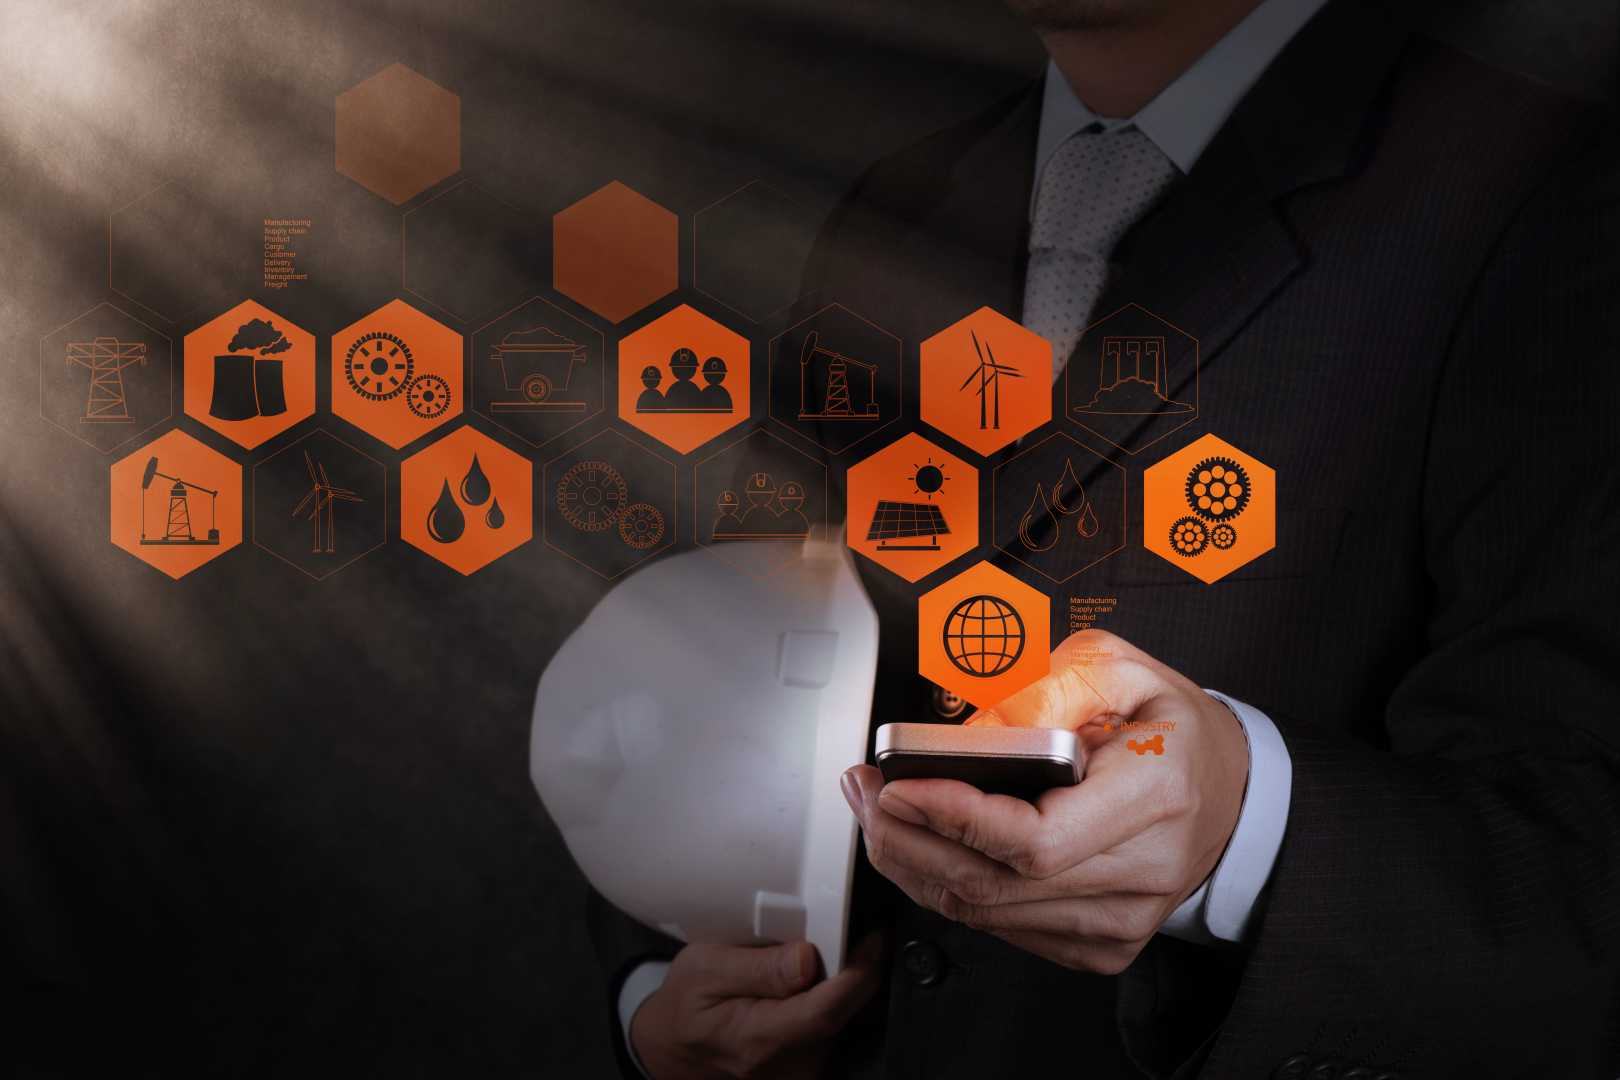 Connected Technologies Mobile Industry 4.0